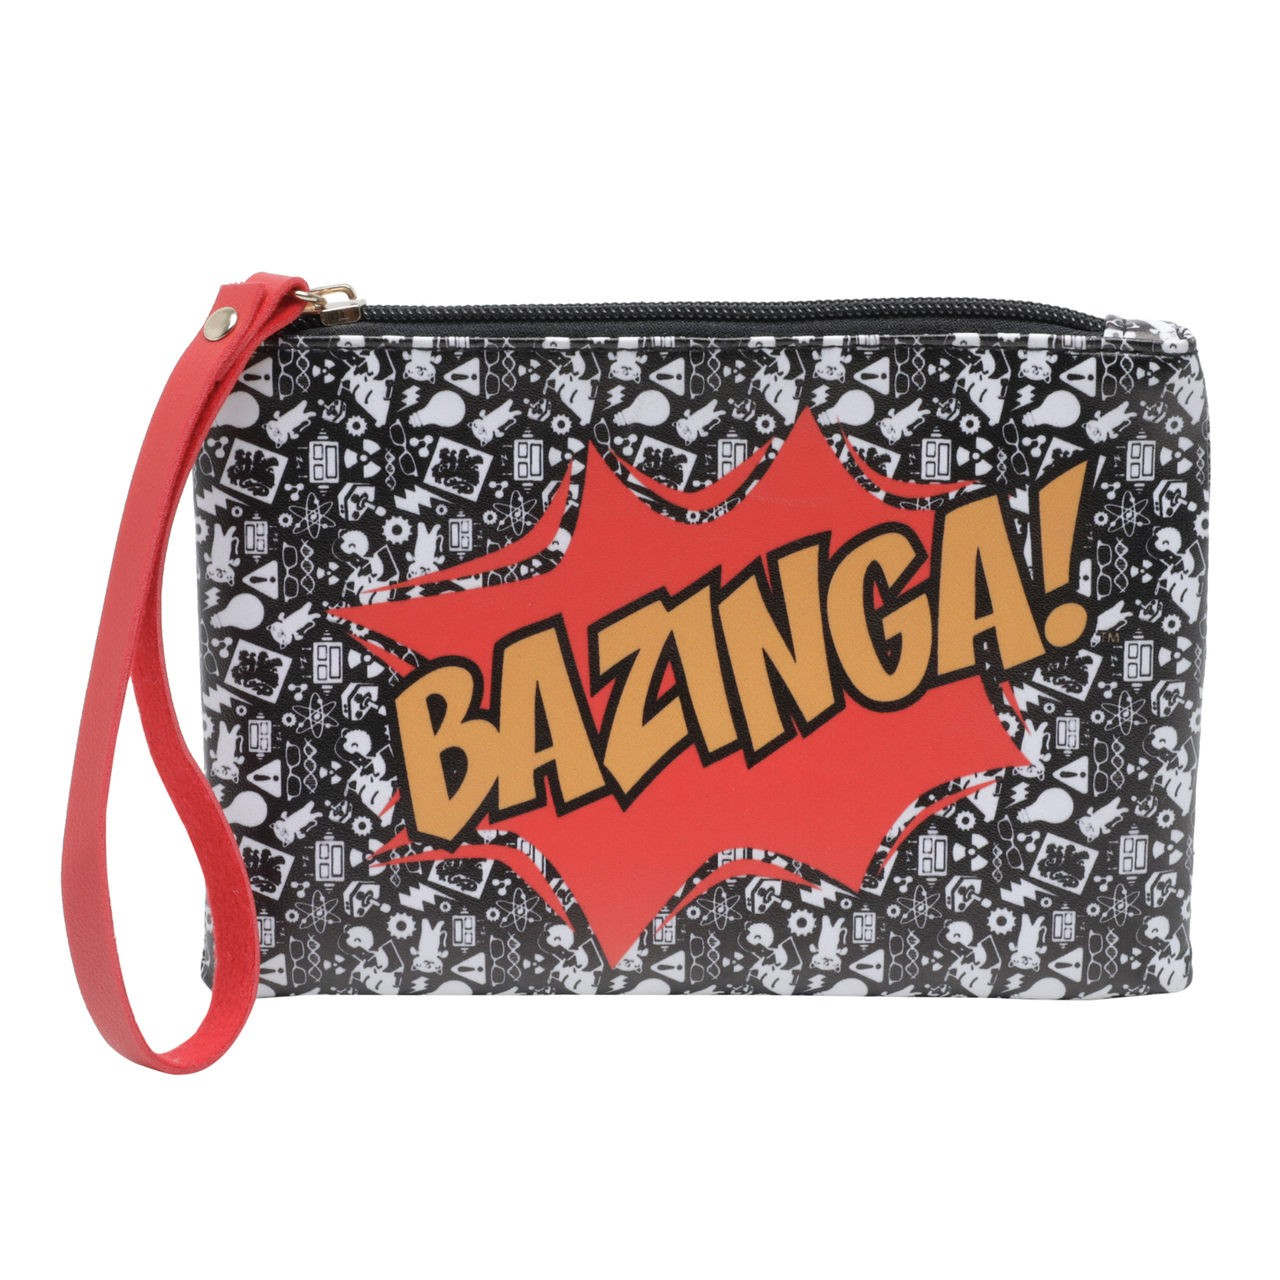 Carteira Bazinga The big bang theory - Urban